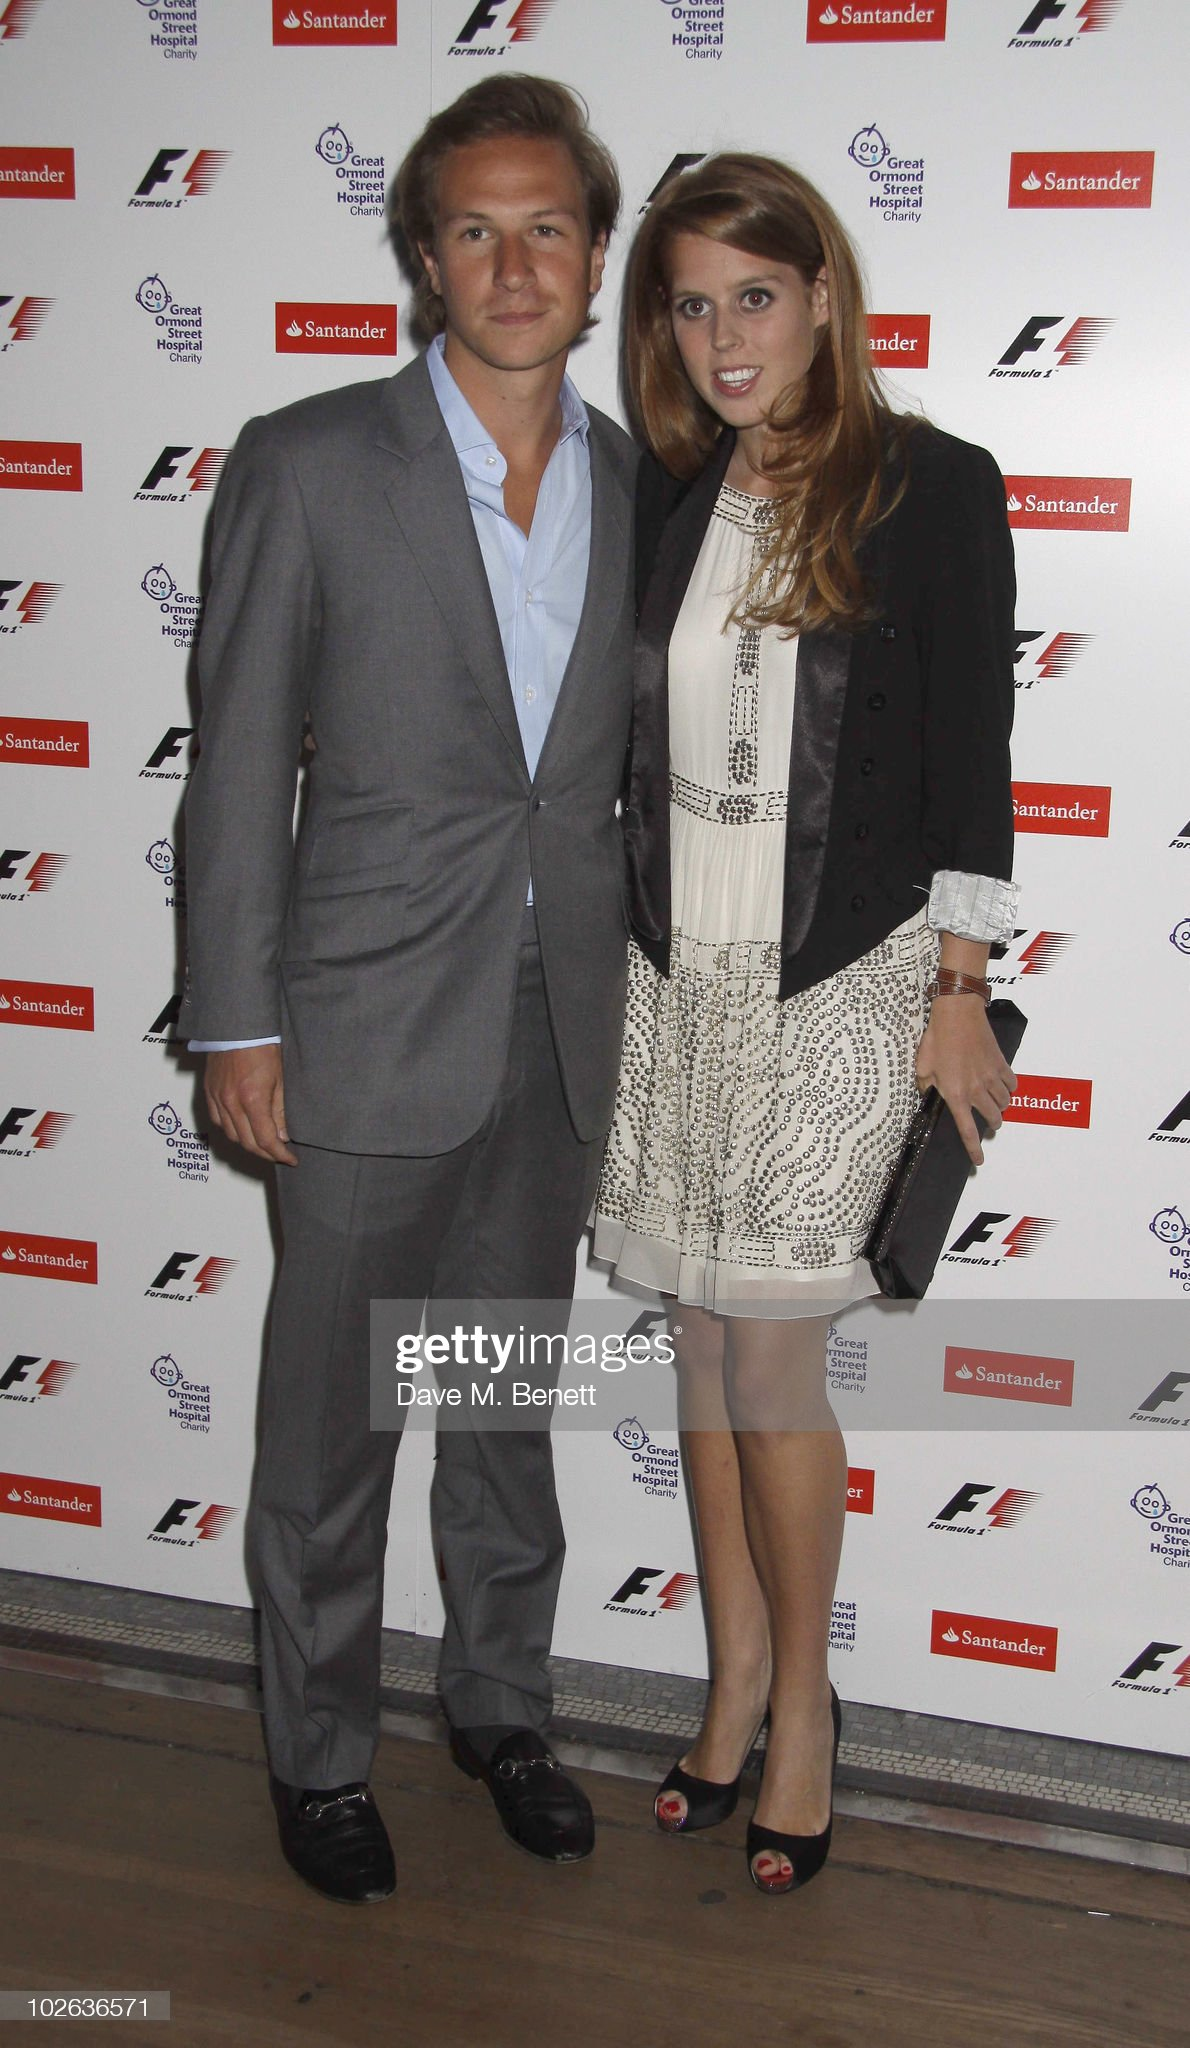 The F1 Party - Inside : News Photo